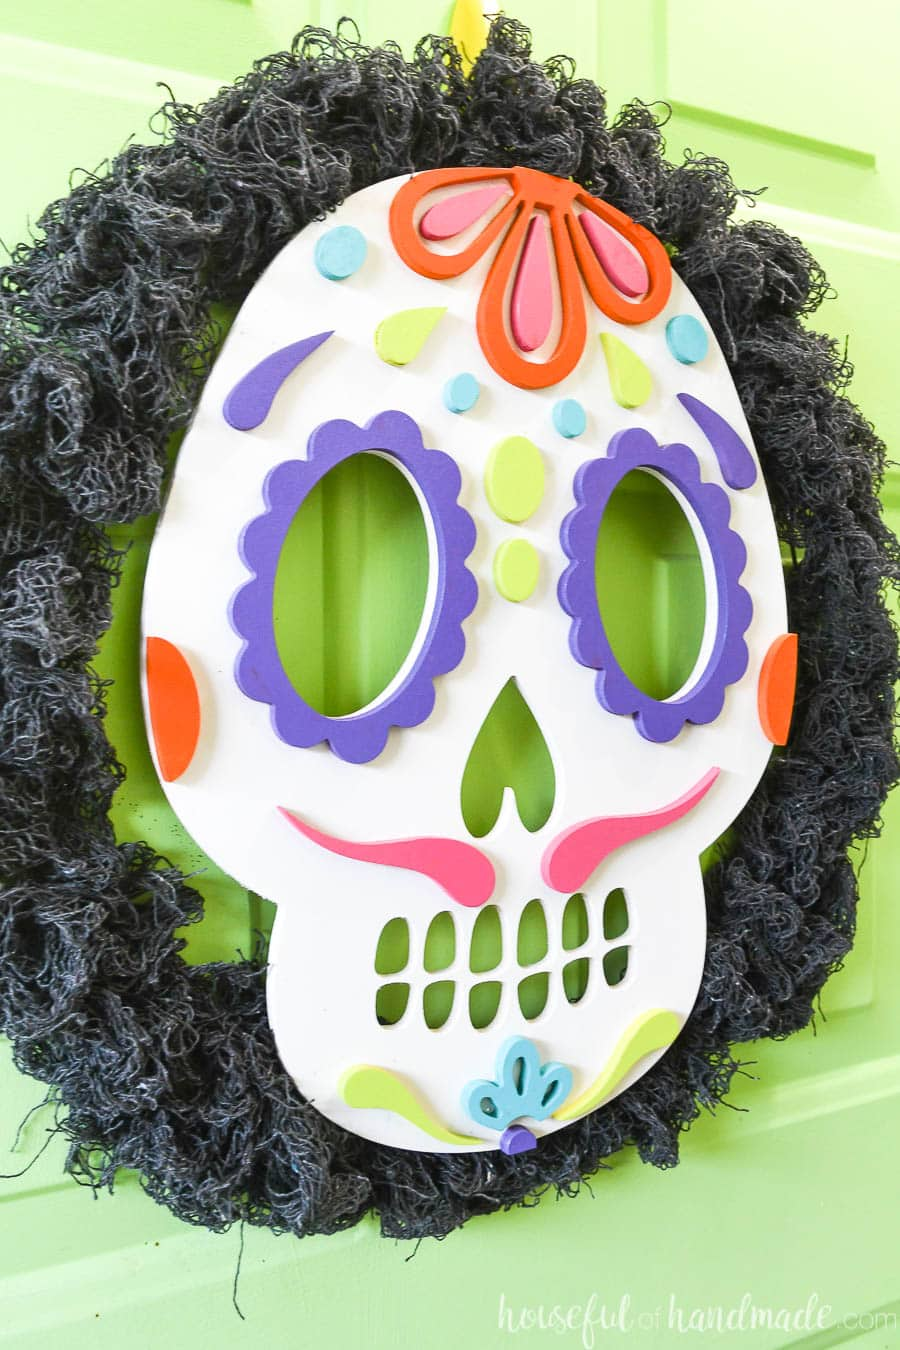 Close-up view of the completed DIY sugar skull wreath hanging on the front door.